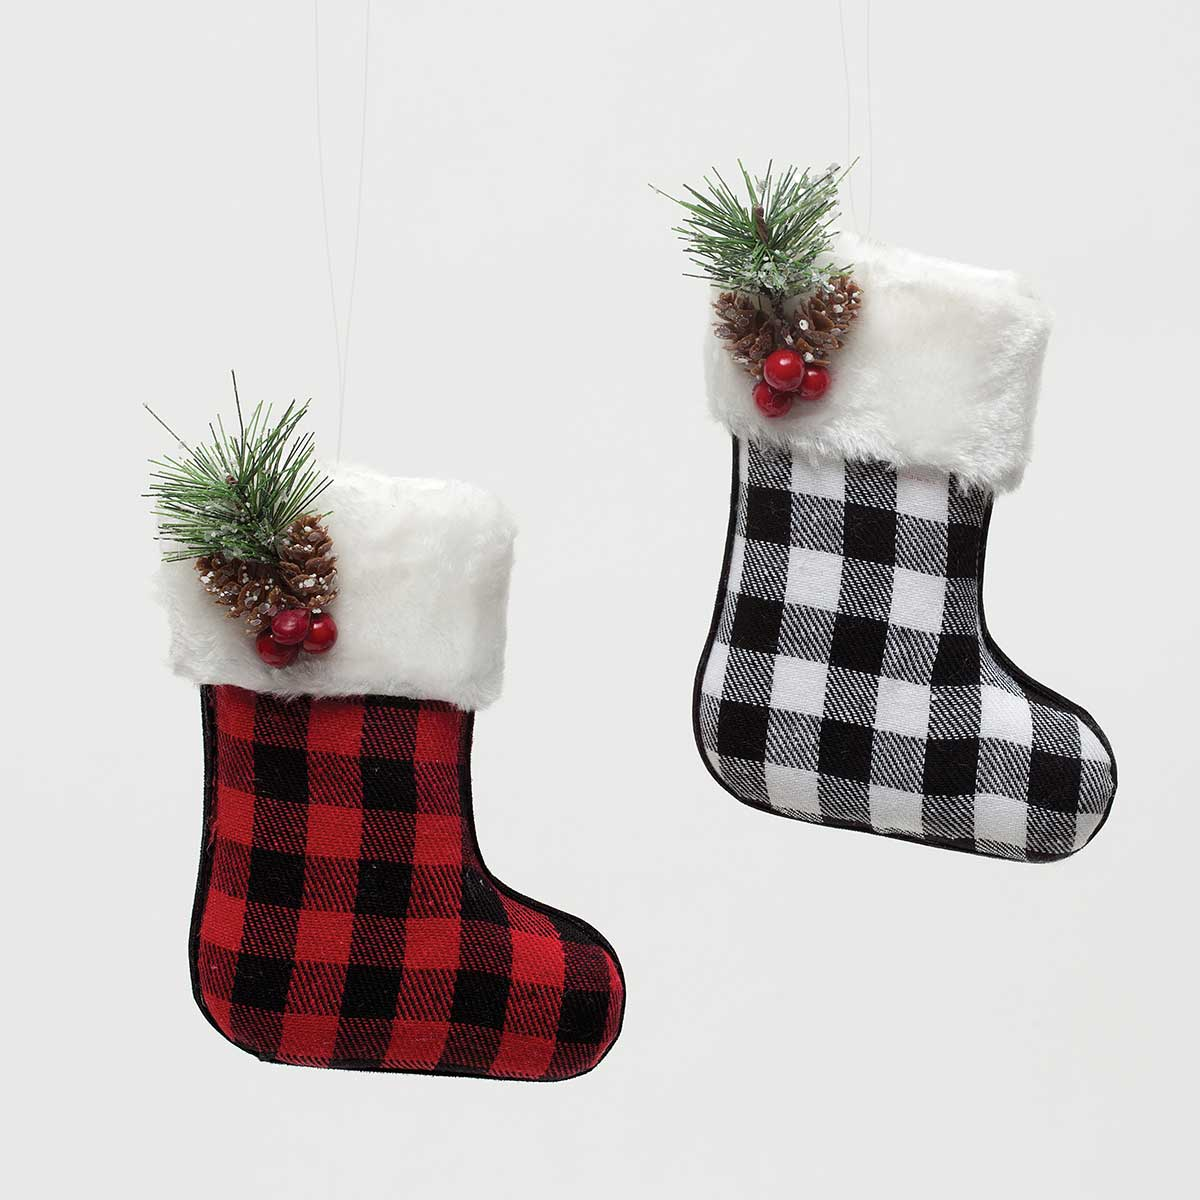 LET IT SNOW PLAID STOCKING